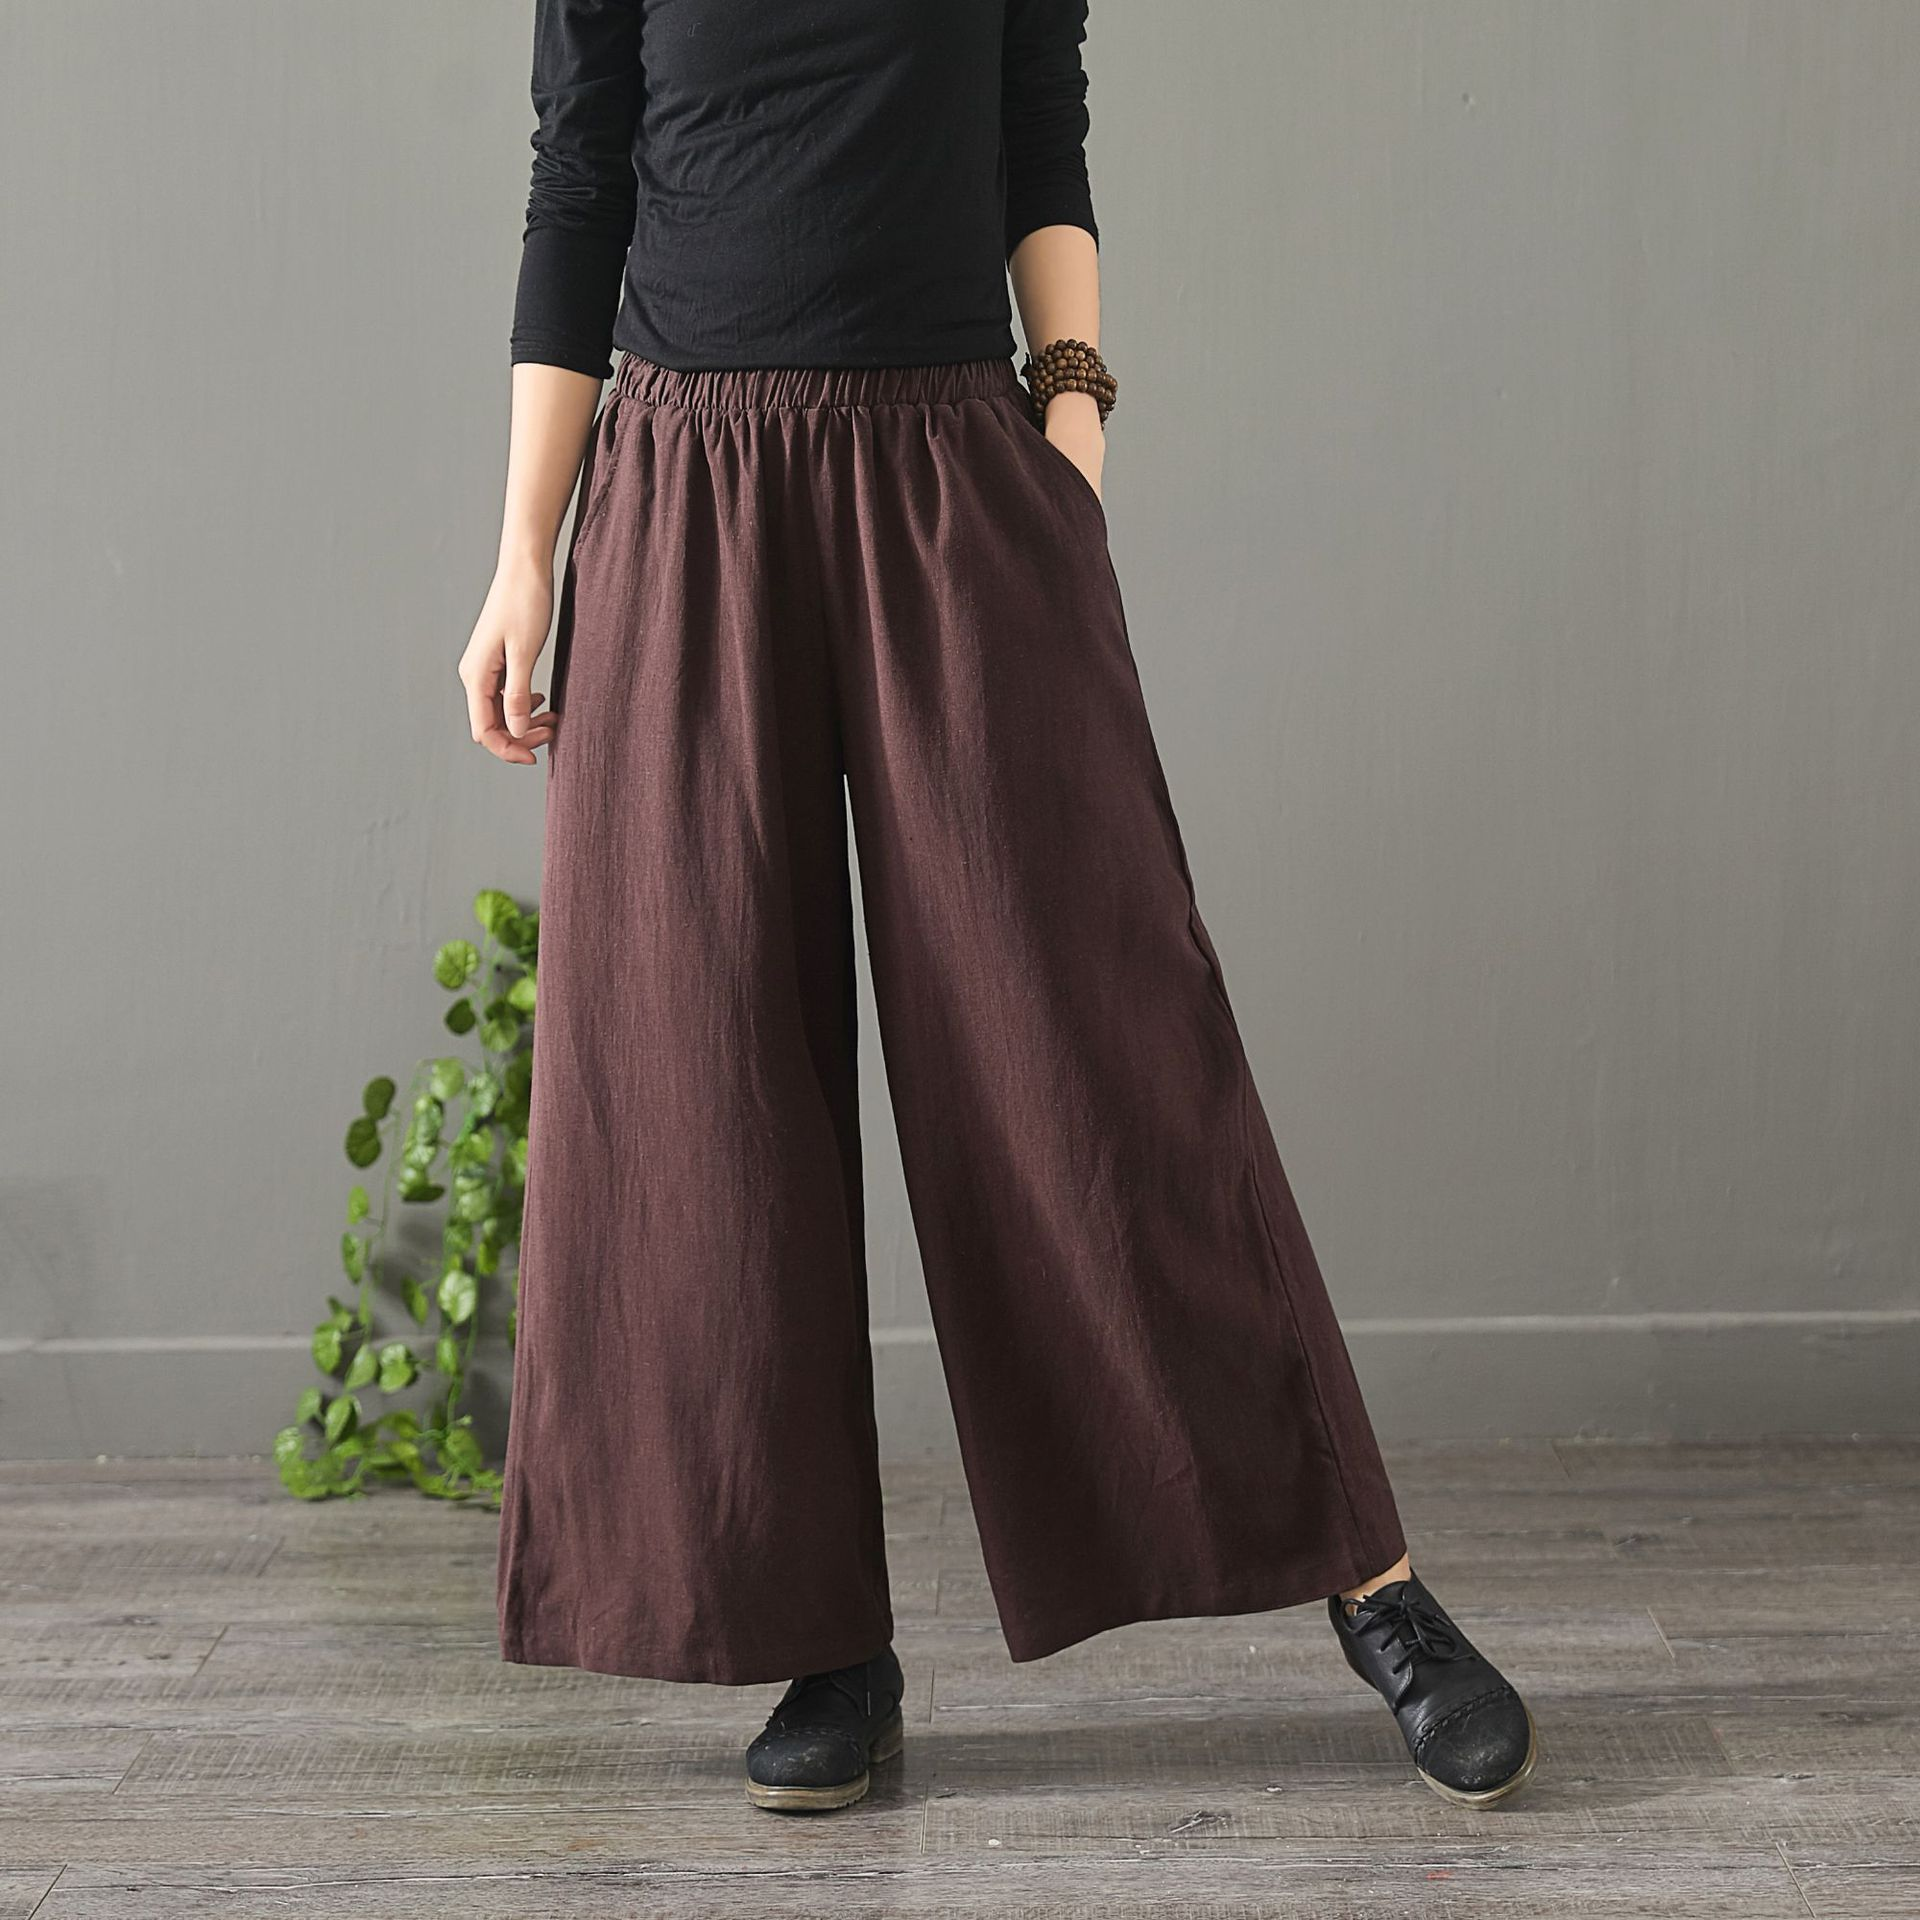 2019 spring new cotton GIRL   PANT   LONG elastic waist loose straight   wide     leg     pants   women casual trousers four colors wholesale